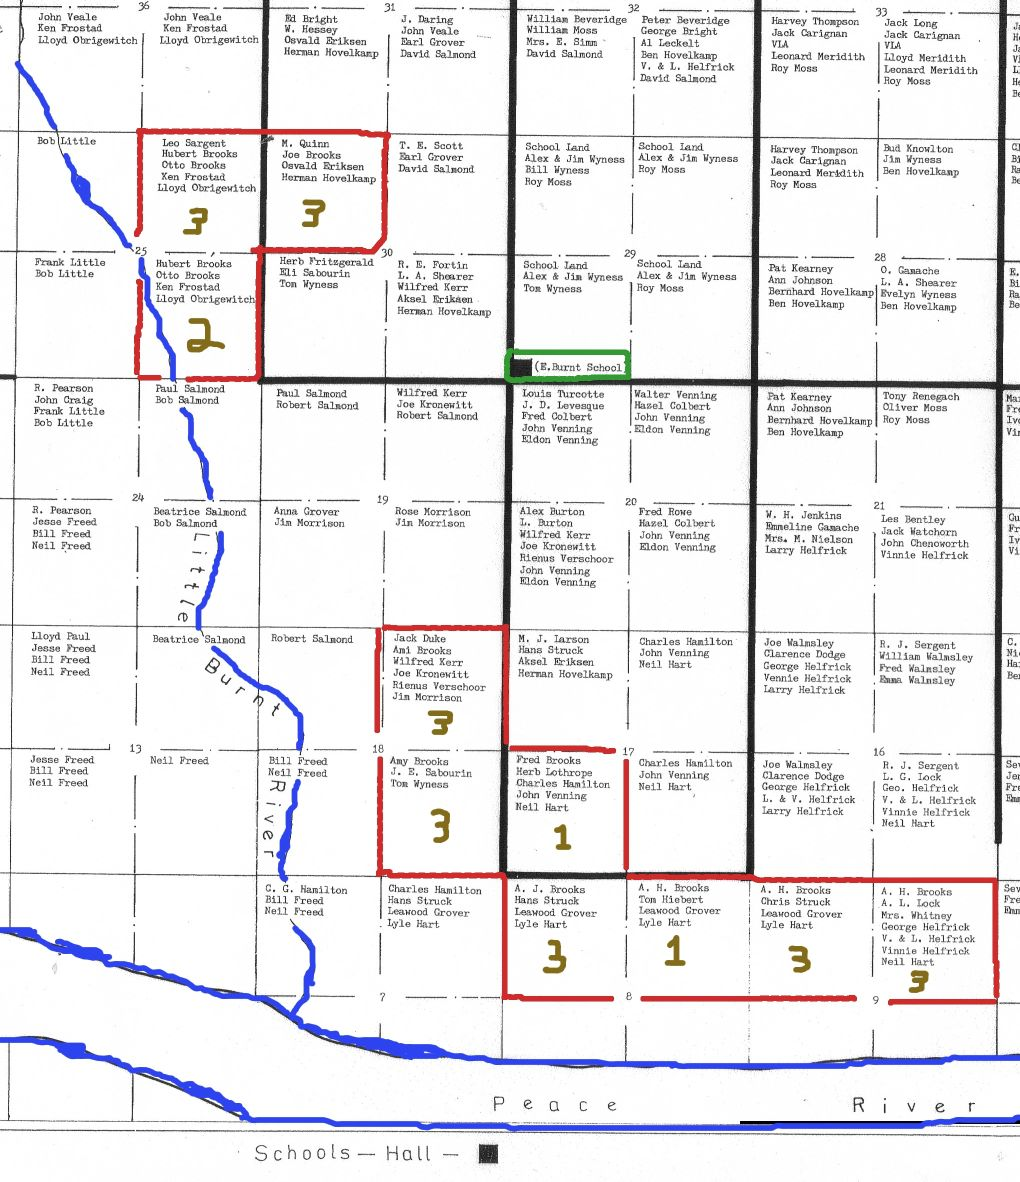 Peace River Homested Map Showing List of Quarter Section Historical Property Owners